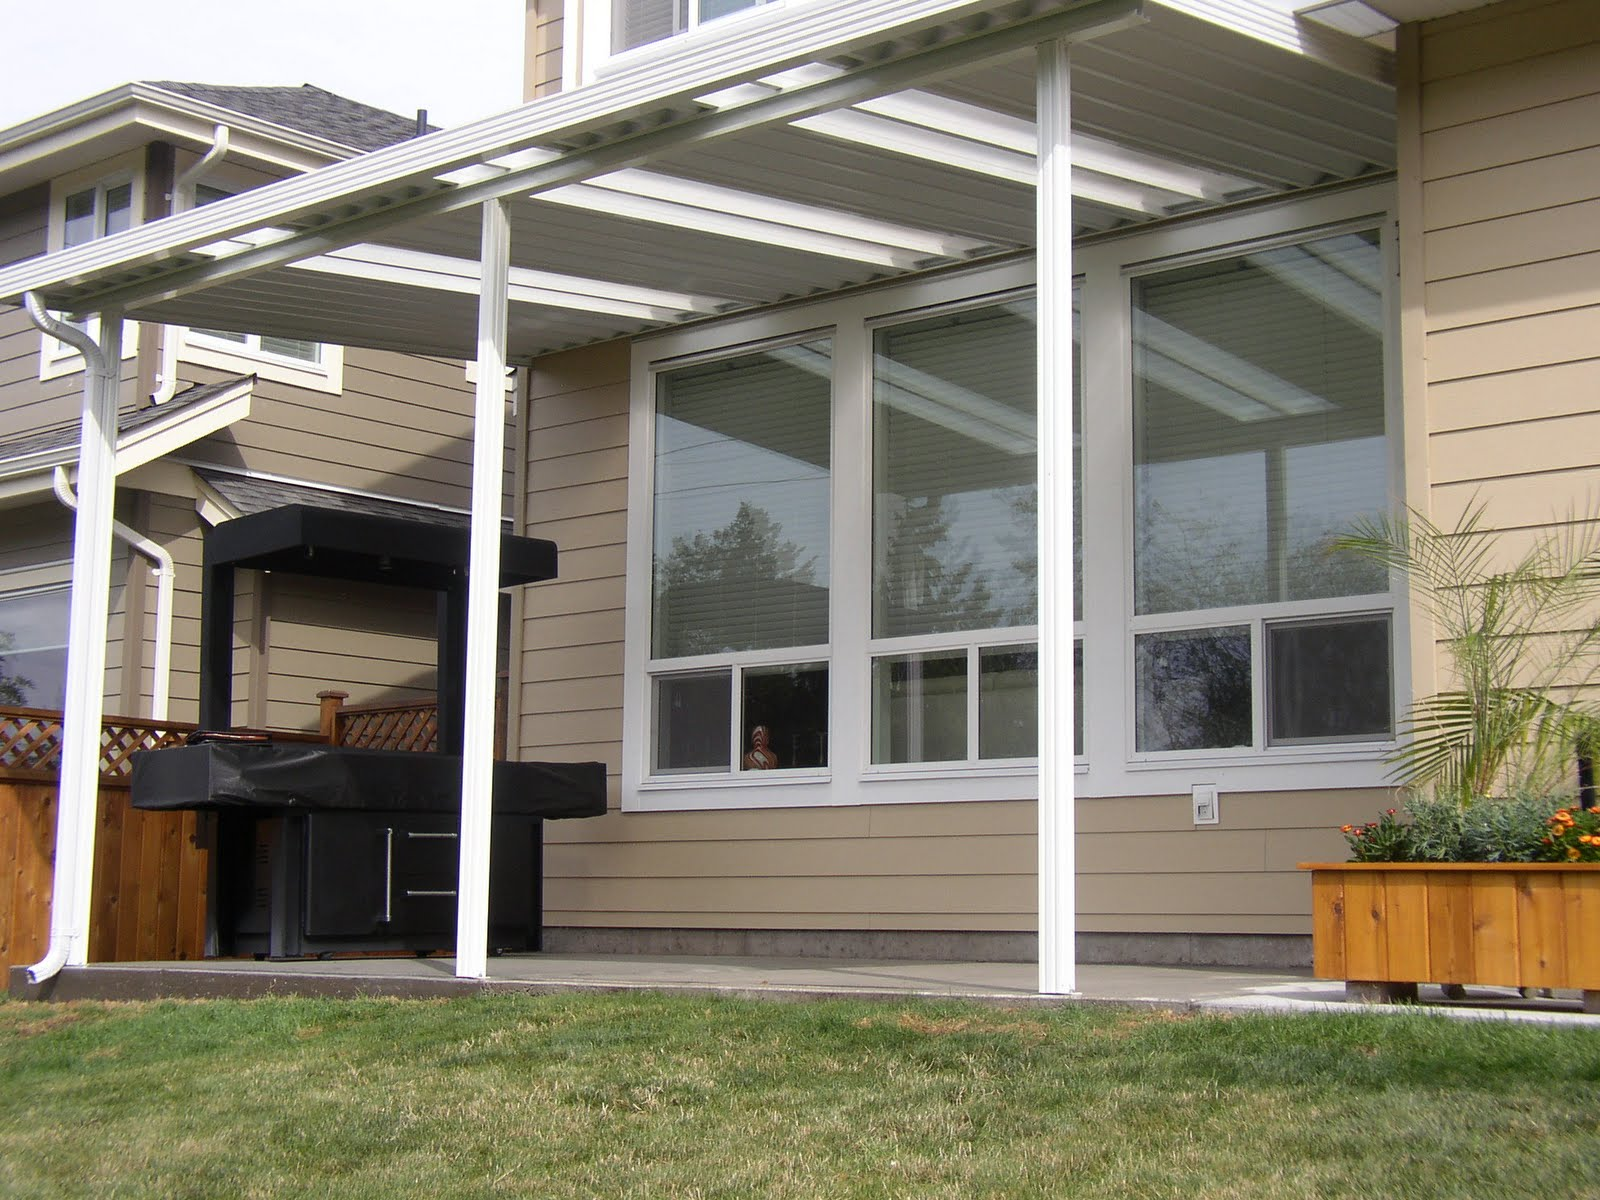 Awnings and Patio Covers: June 2010